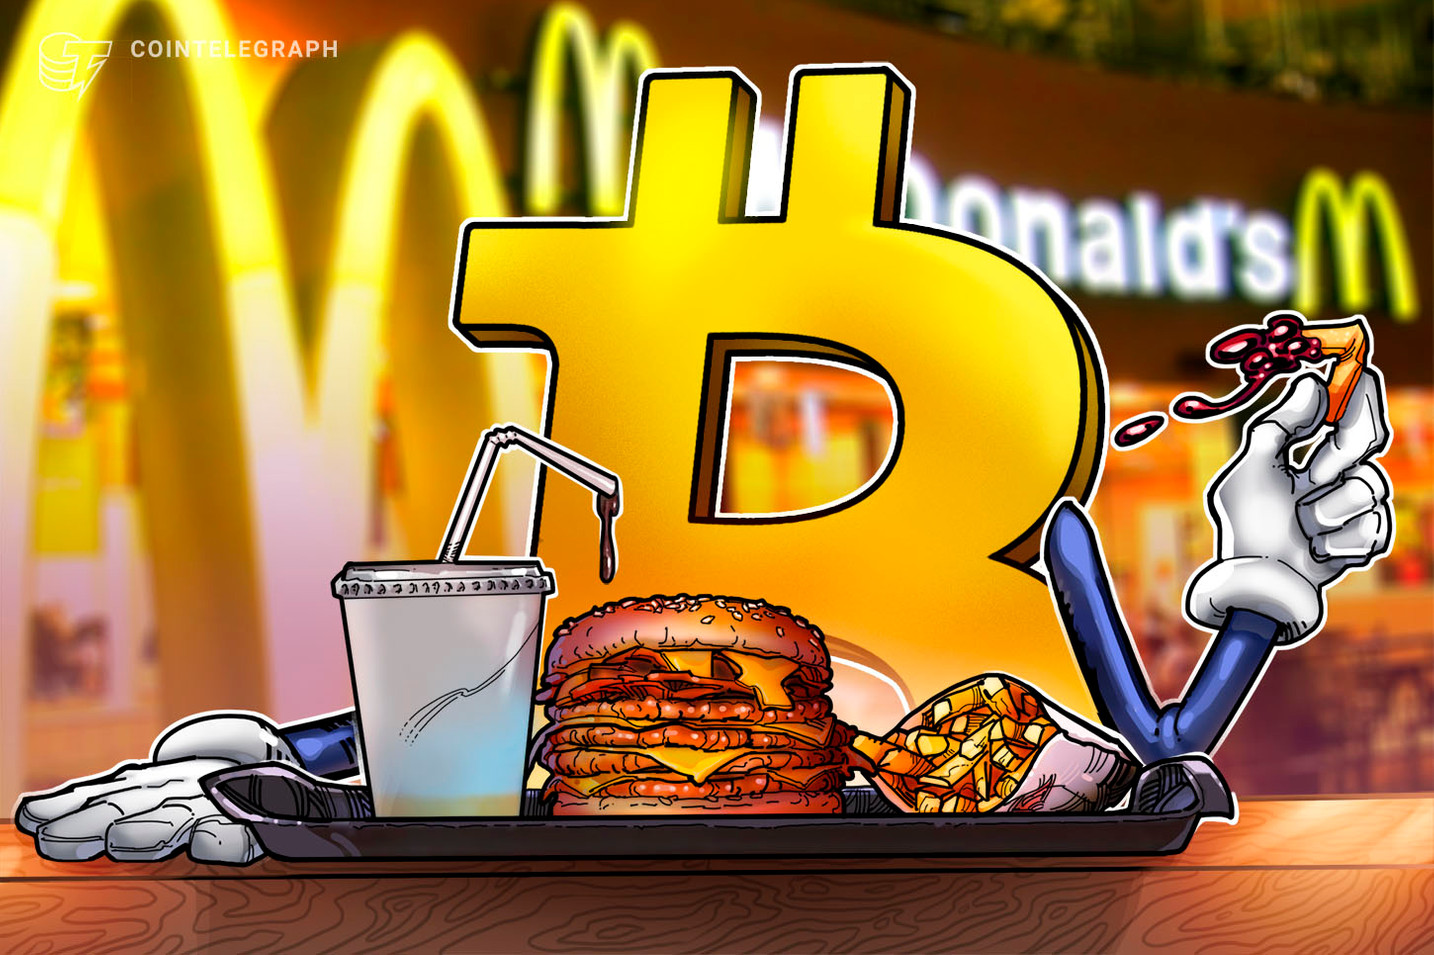 Fiat food? Bitcoin Big Mac Index crashes below 10,000 satoshis for the first time ever